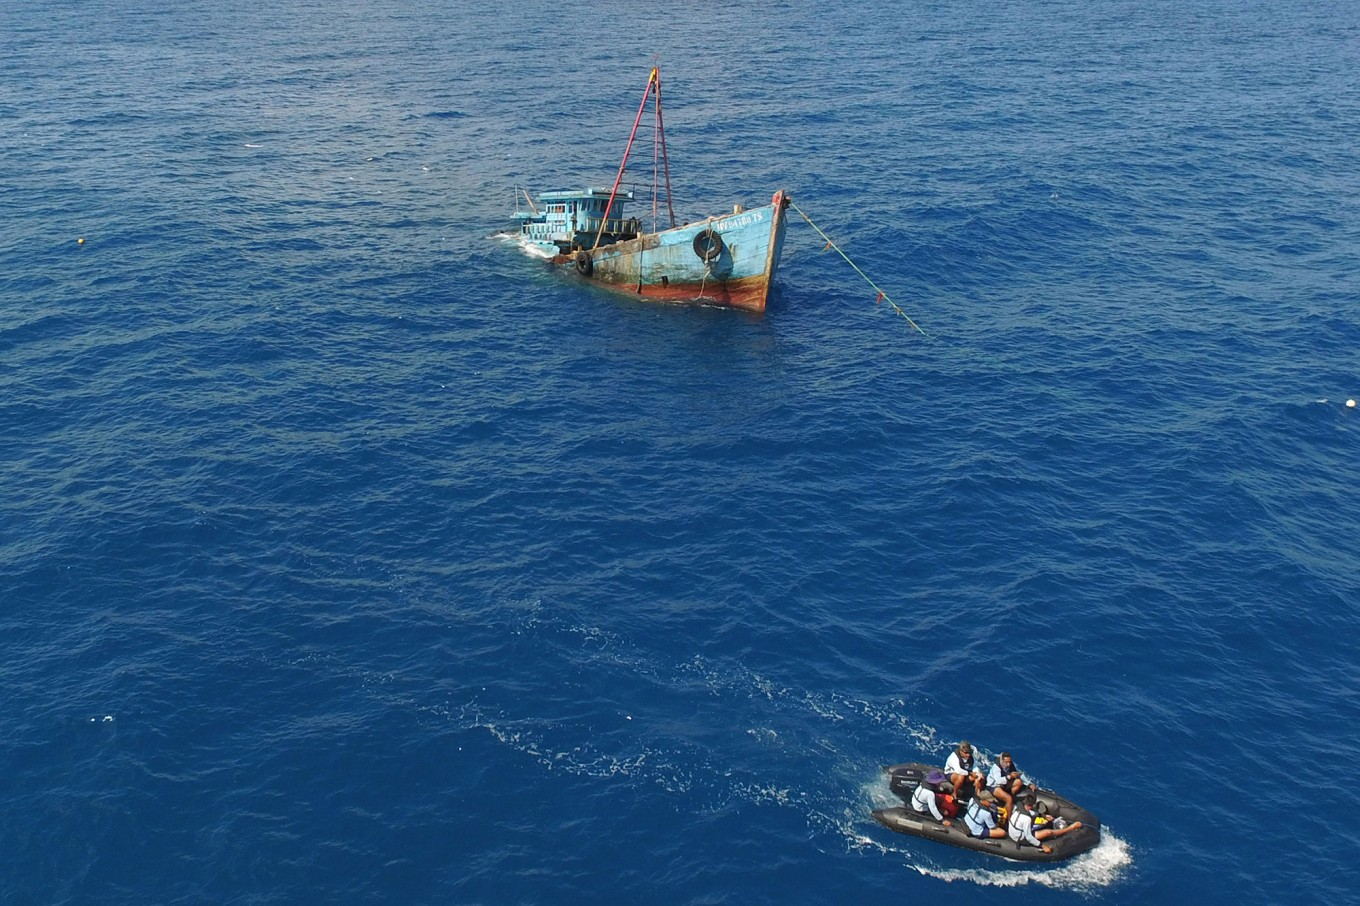 First line of defense: Indonesia to populate Natuna waters with fishers